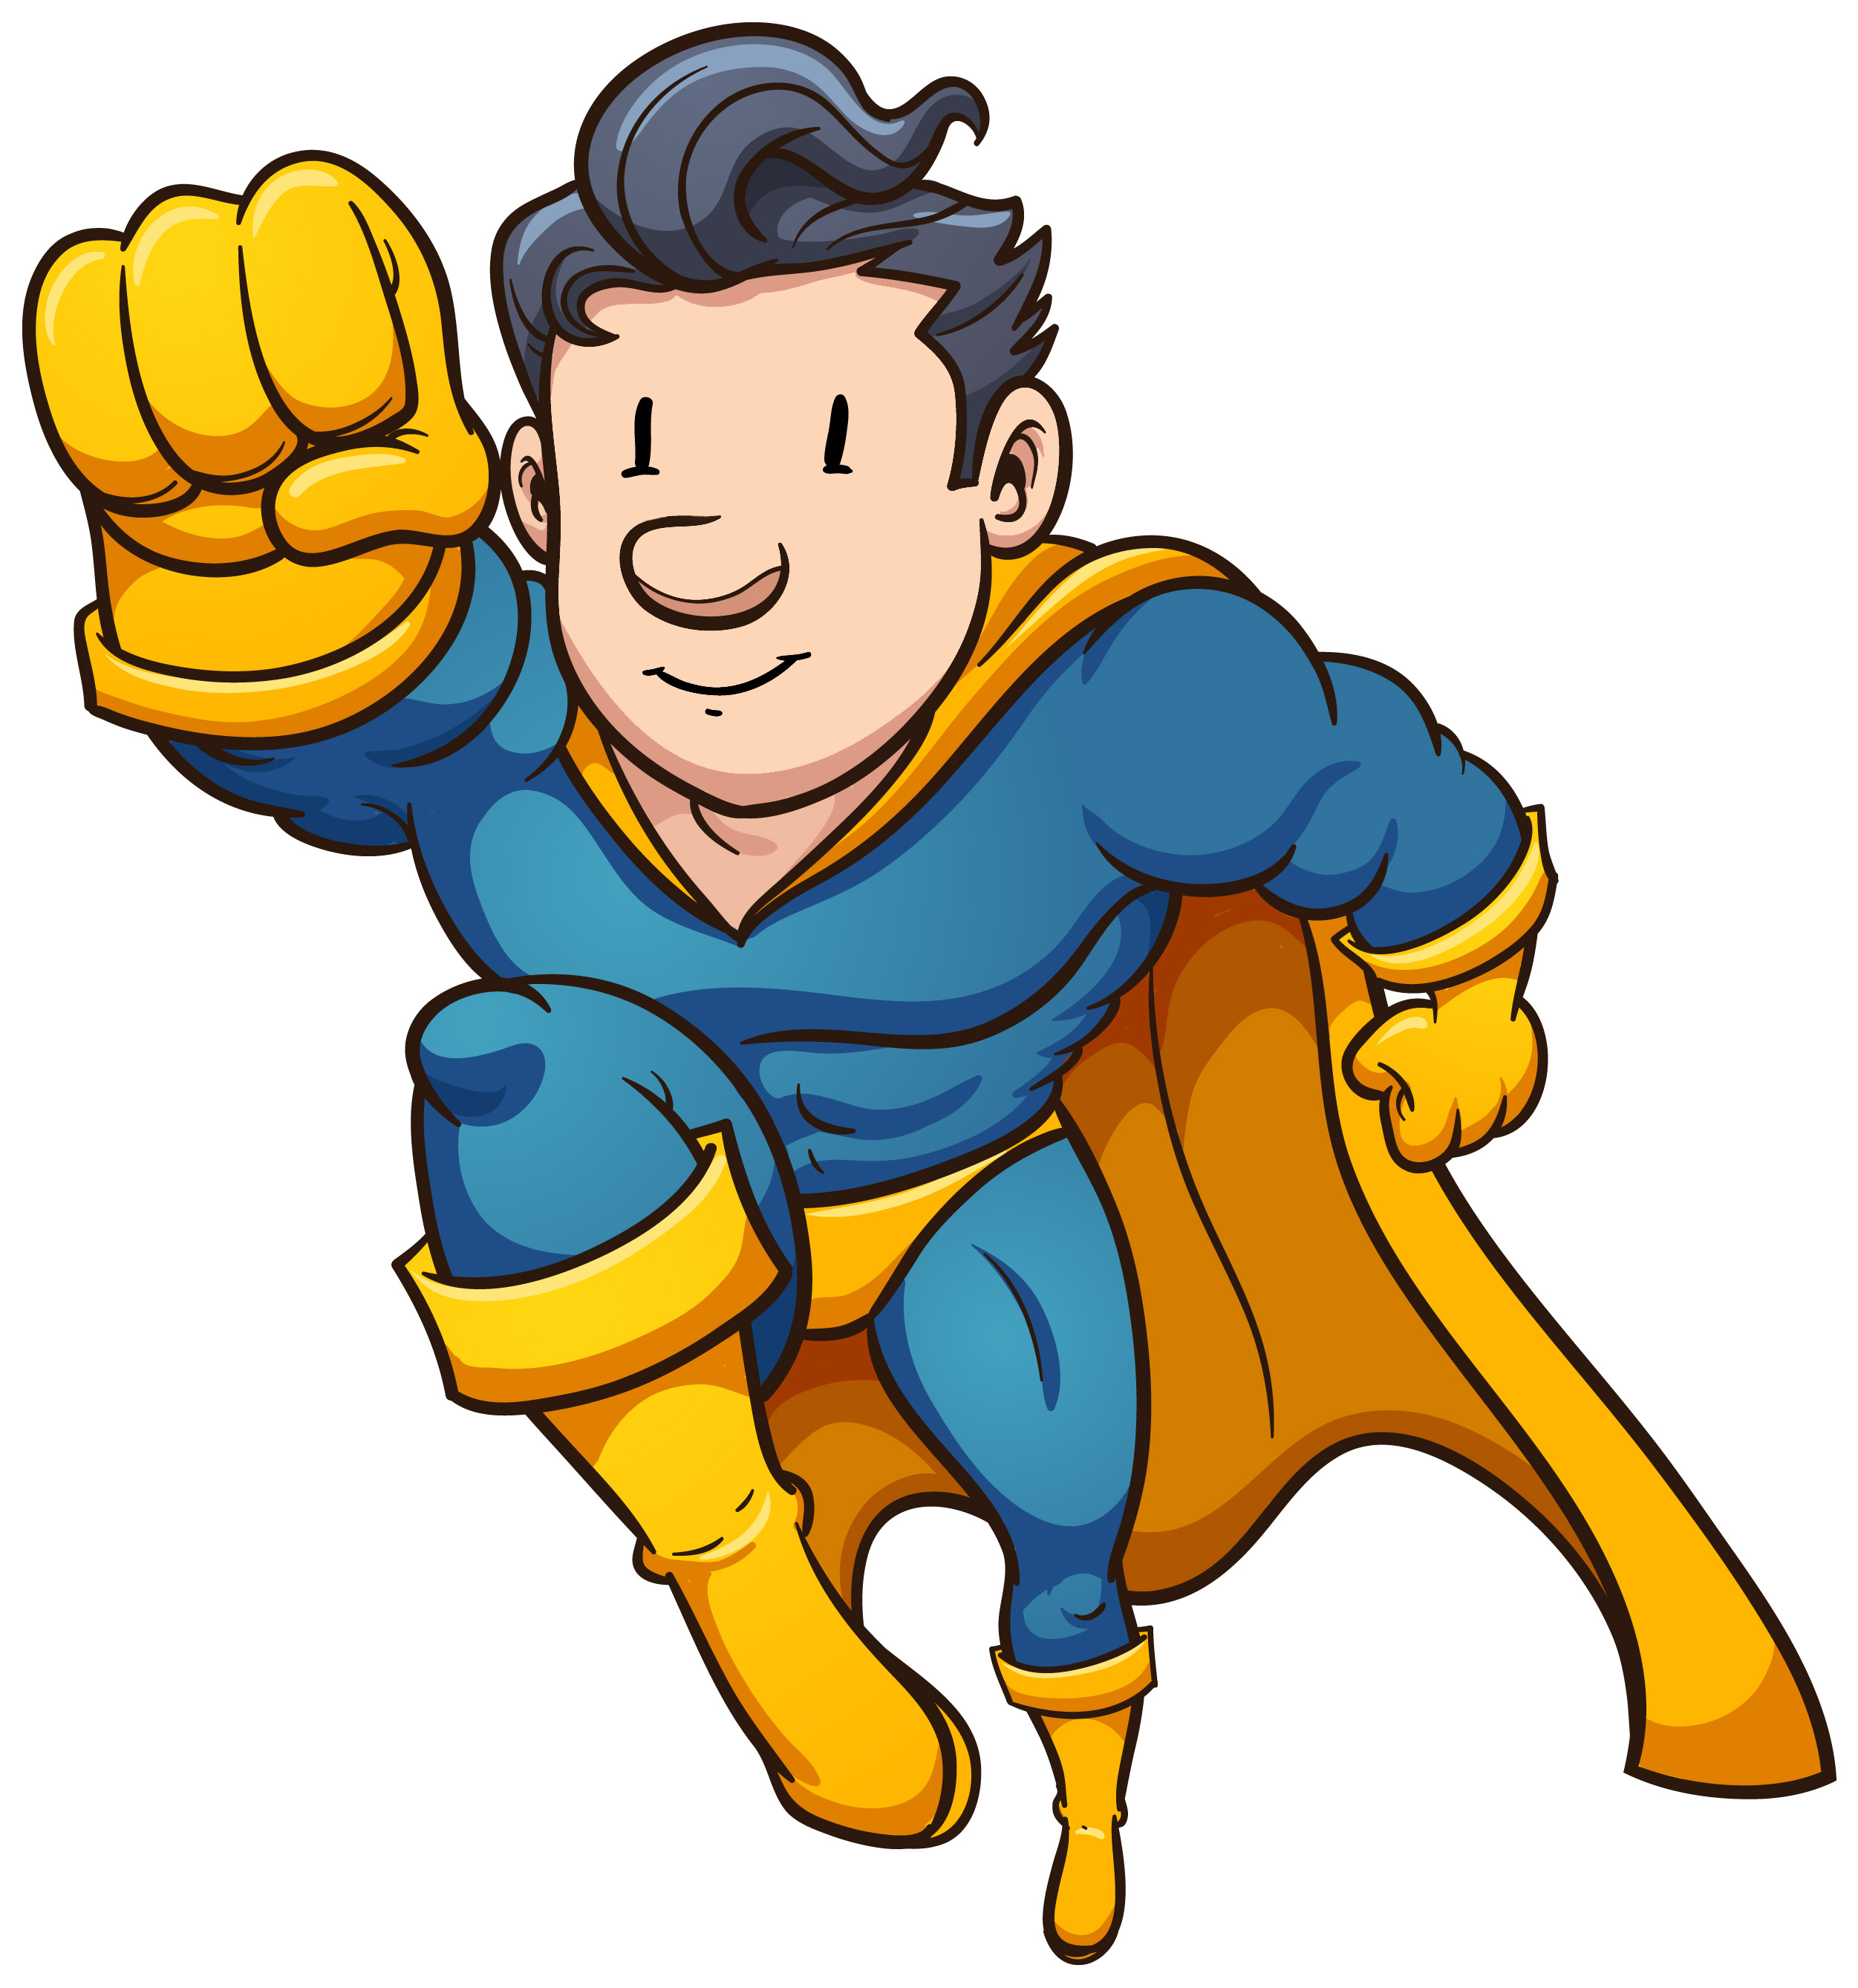 Superhero clipart in action image transparent stock 101+ Superhero Clip Art | ClipartLook image transparent stock